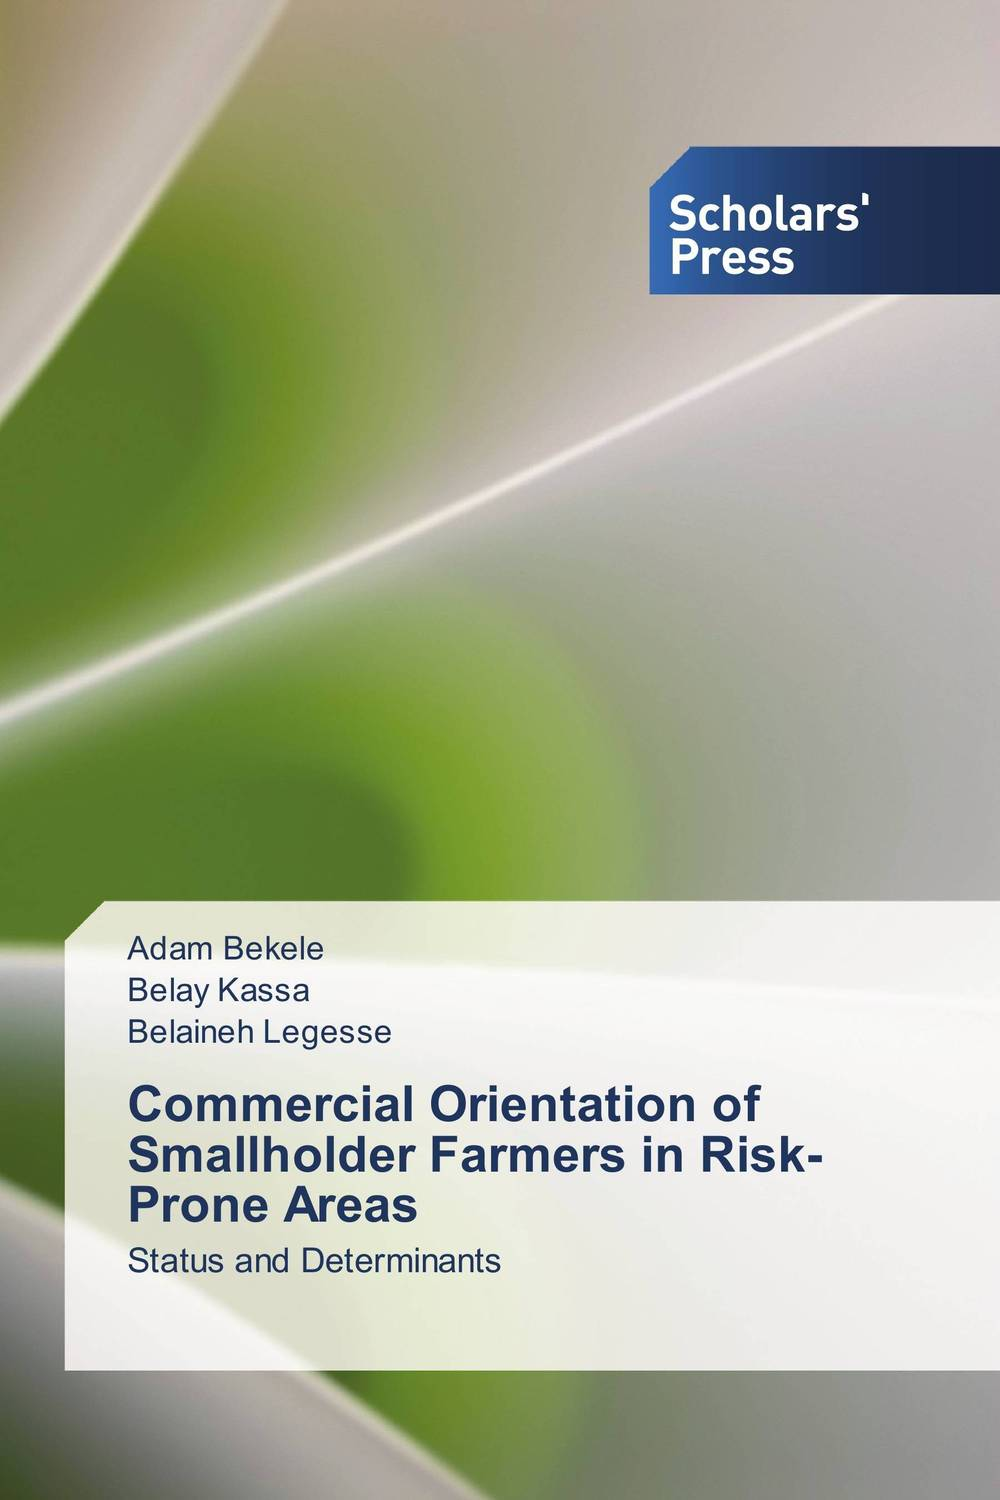 Commercial Orientation of Smallholder Farmers in Risk-Prone Areas simon manda smallholder farmers food security consequences of global land grabs